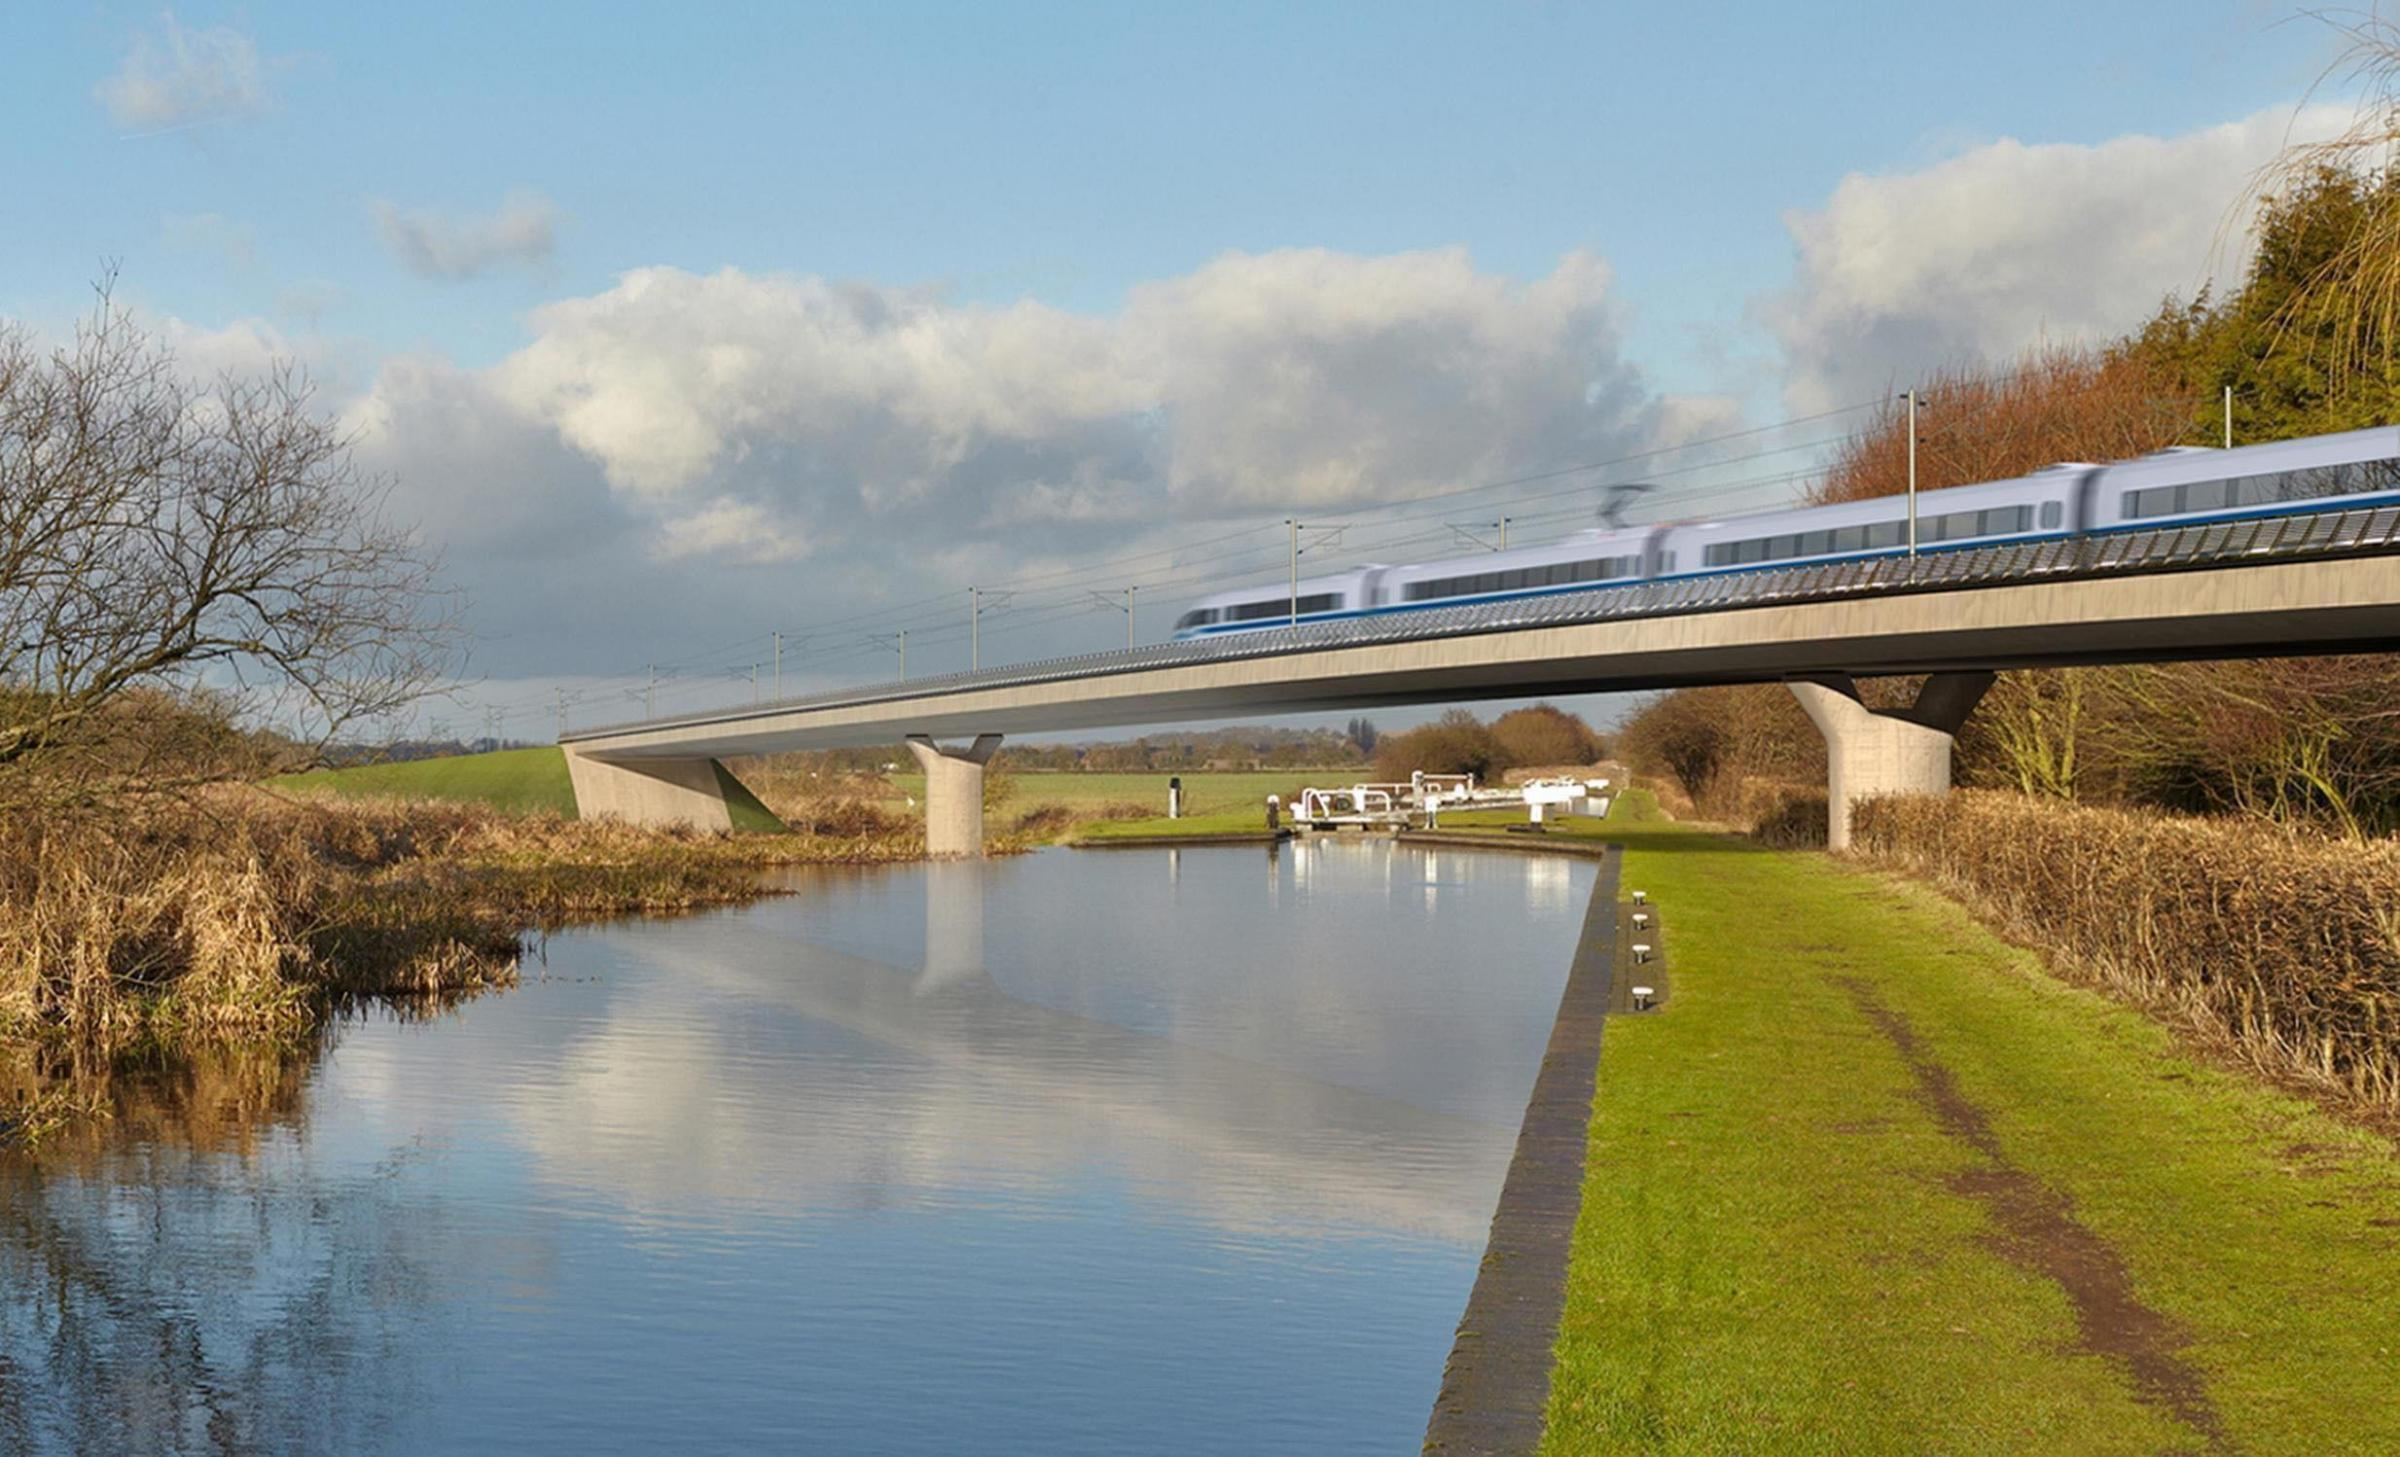 Campaign group says 1,925 HS2 petitions sent to Parliament